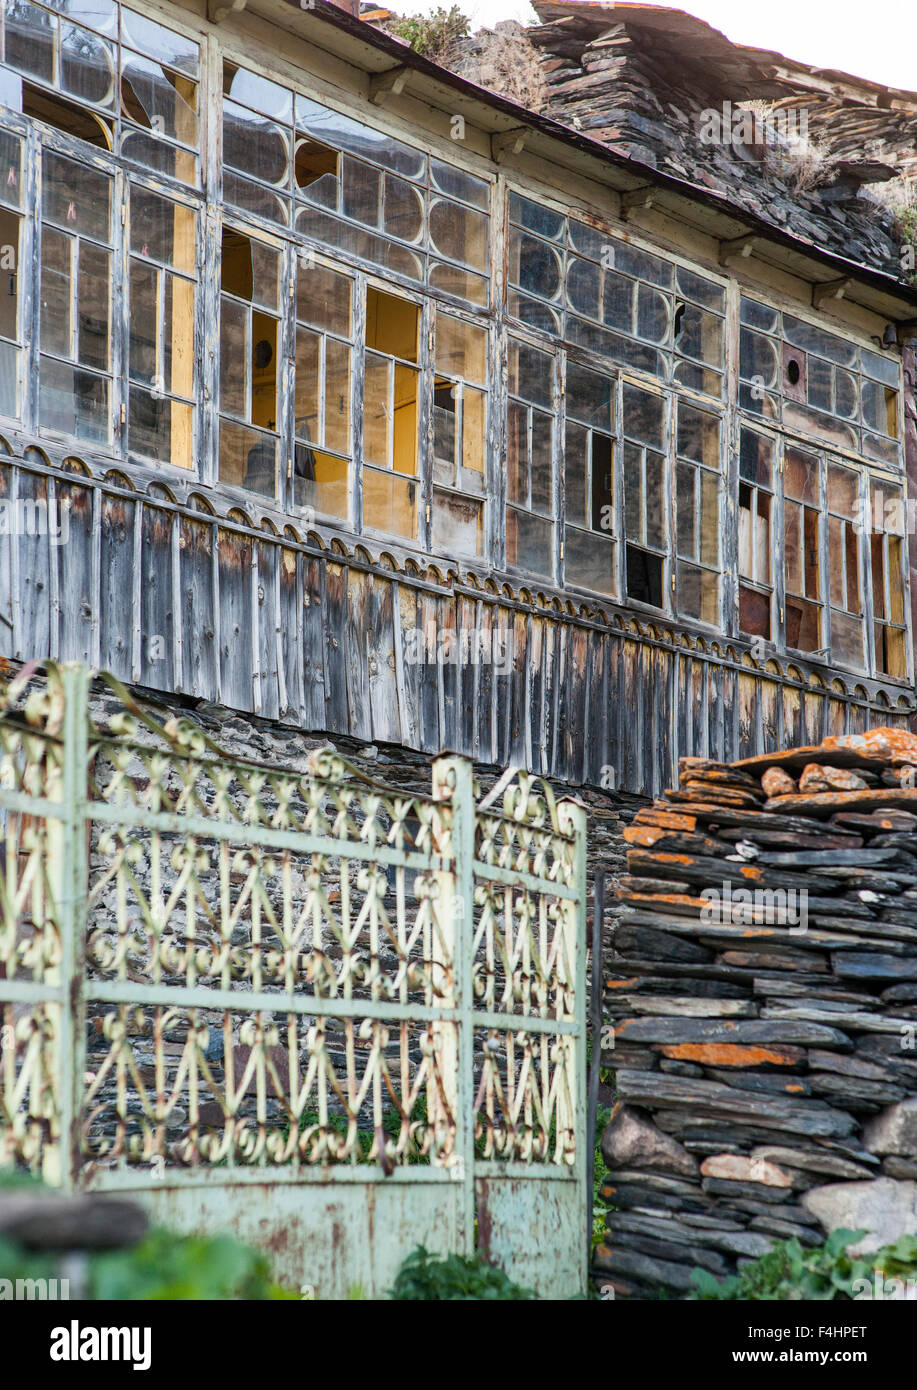 Detail of a house exterior in Ushguli village, Svaneti district, Caucasus mountains, northwestern Georgia. - Stock Image